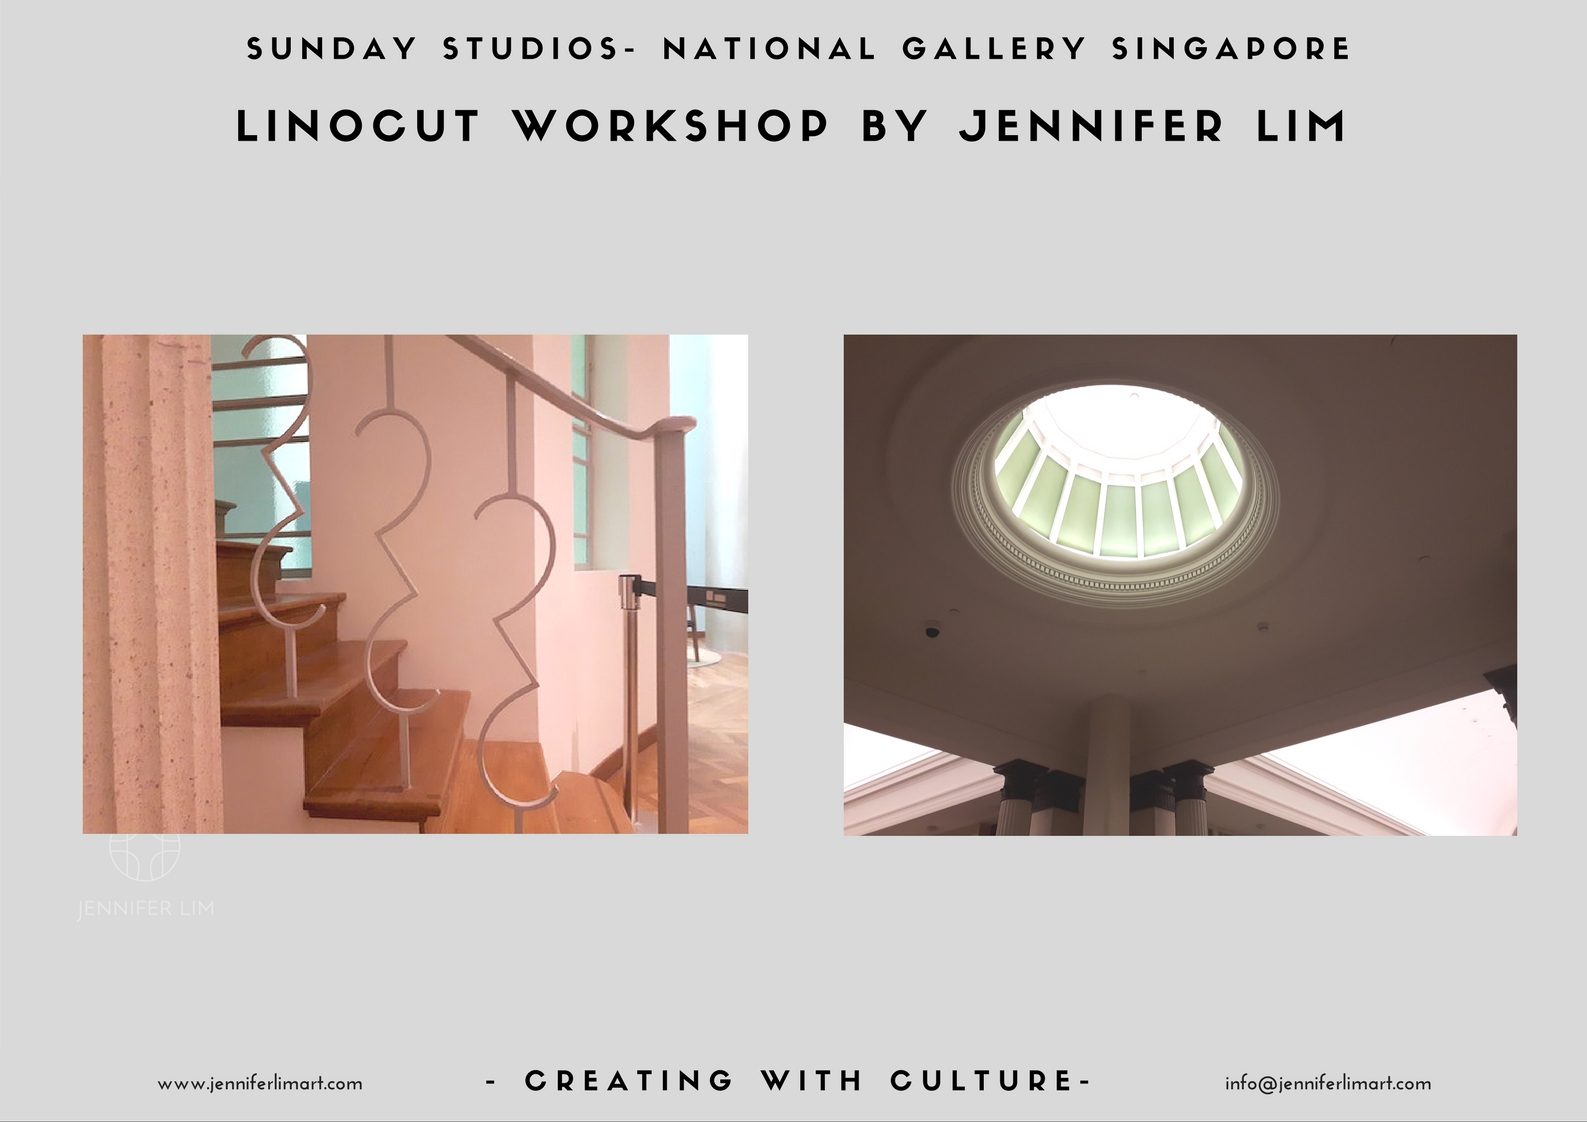 national_gallery_singapore_jennifer_lim_Retro_Balustrade_05_A3.jpg